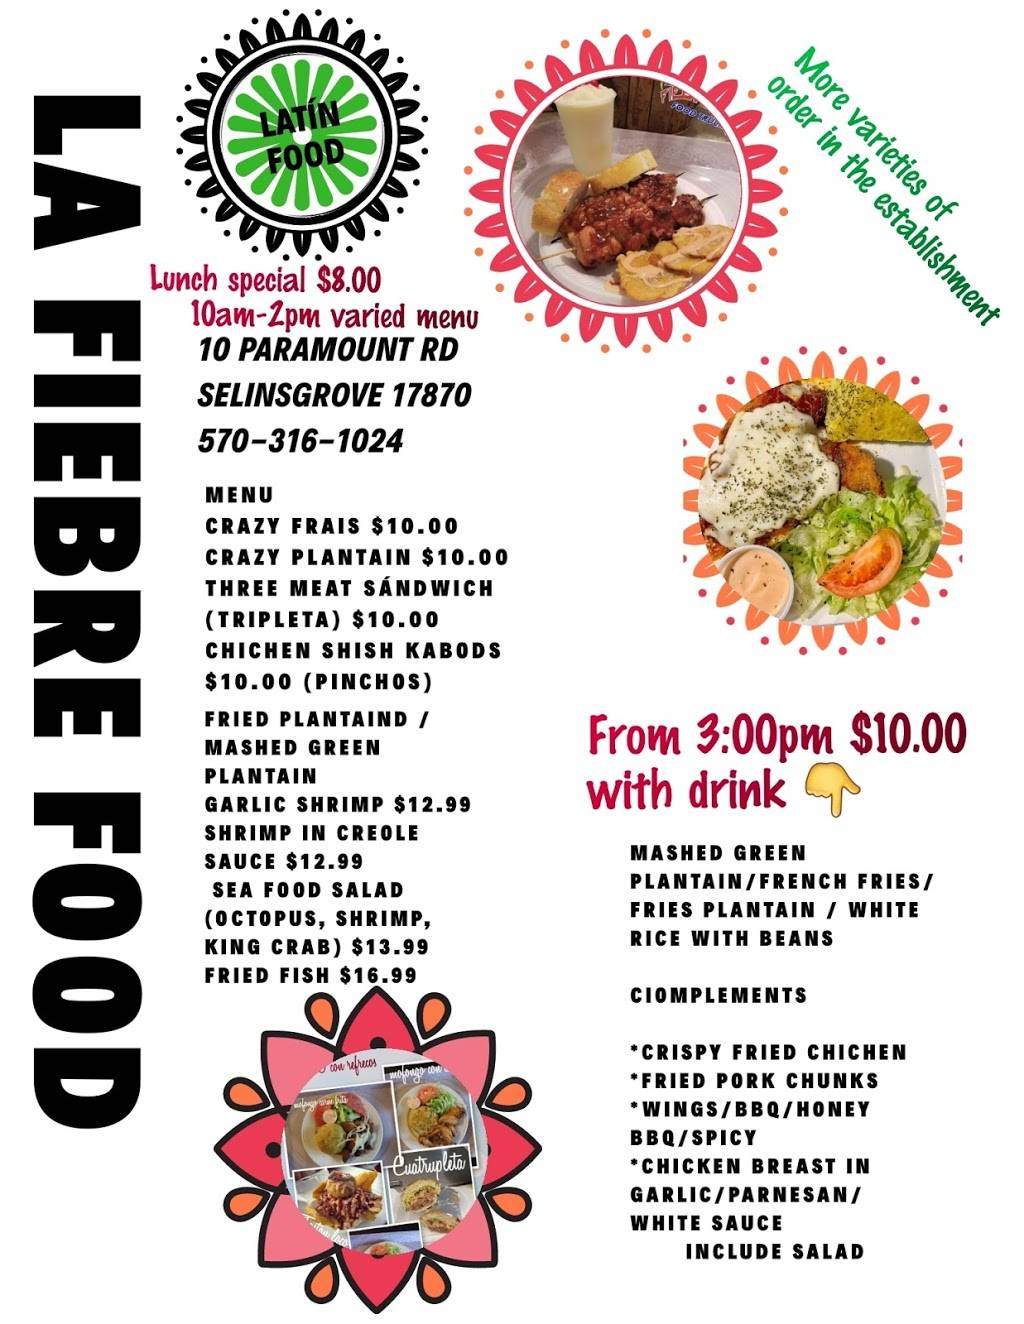 La Fiebre Food Truck | restaurant | 10 Paramount Rd, Selinsgrove, PA 17870, USA | 5703161024 OR +1 570-316-1024